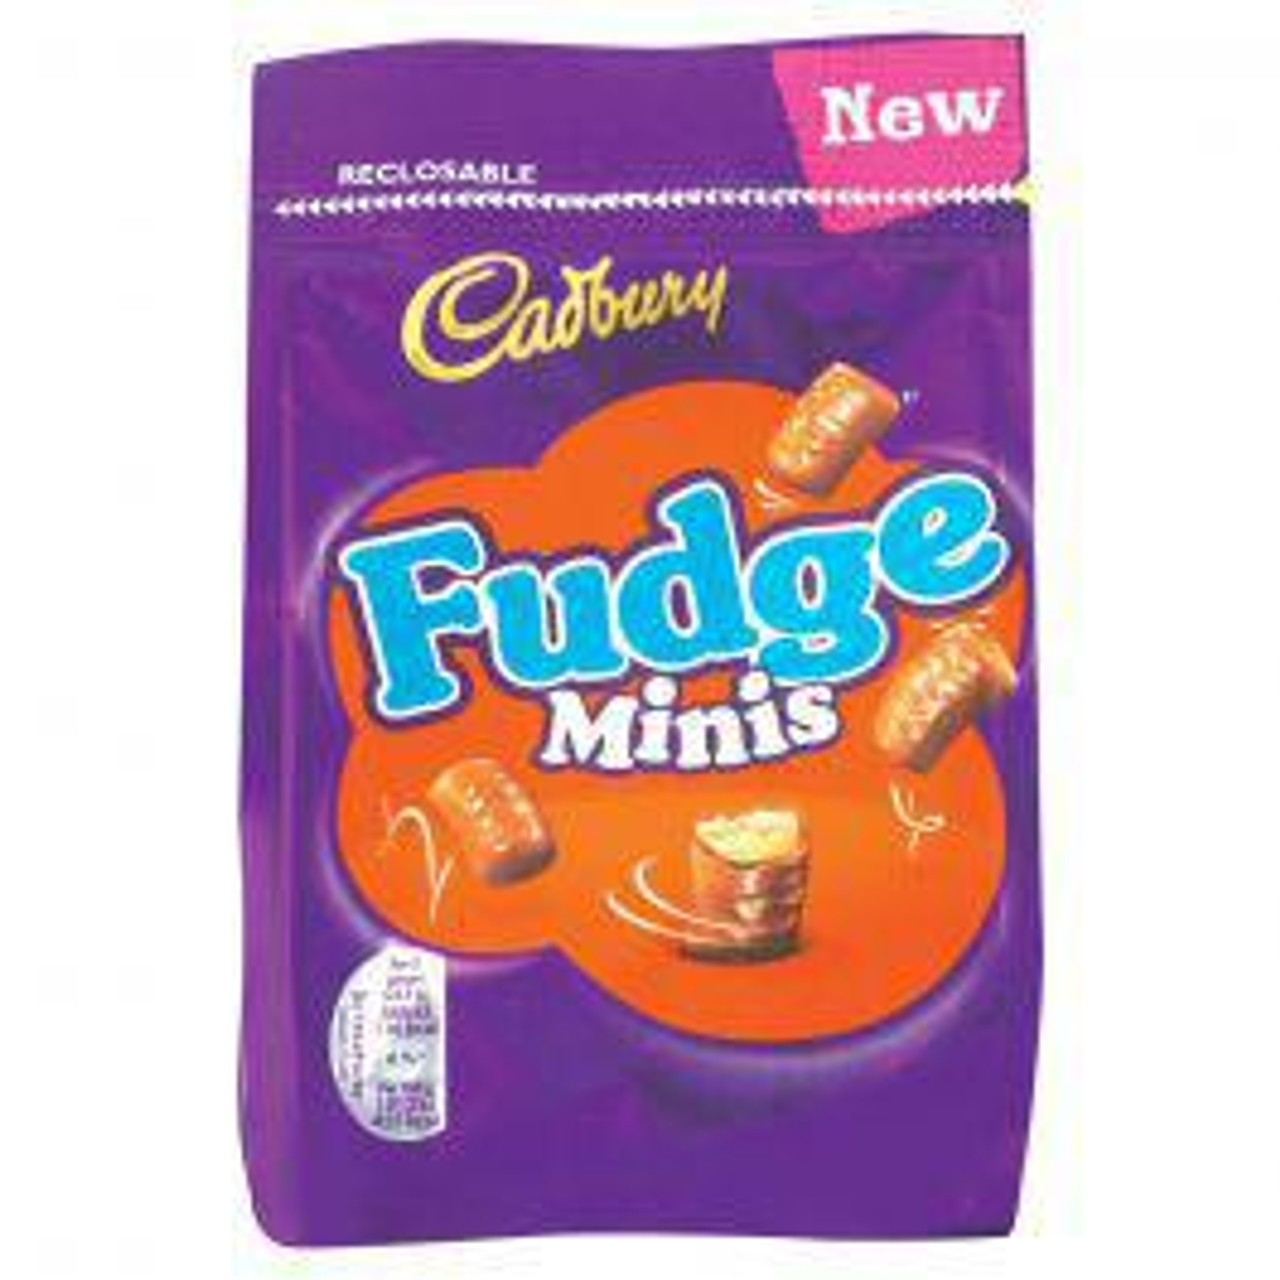 Cadbury - Fudge Bites, 120g